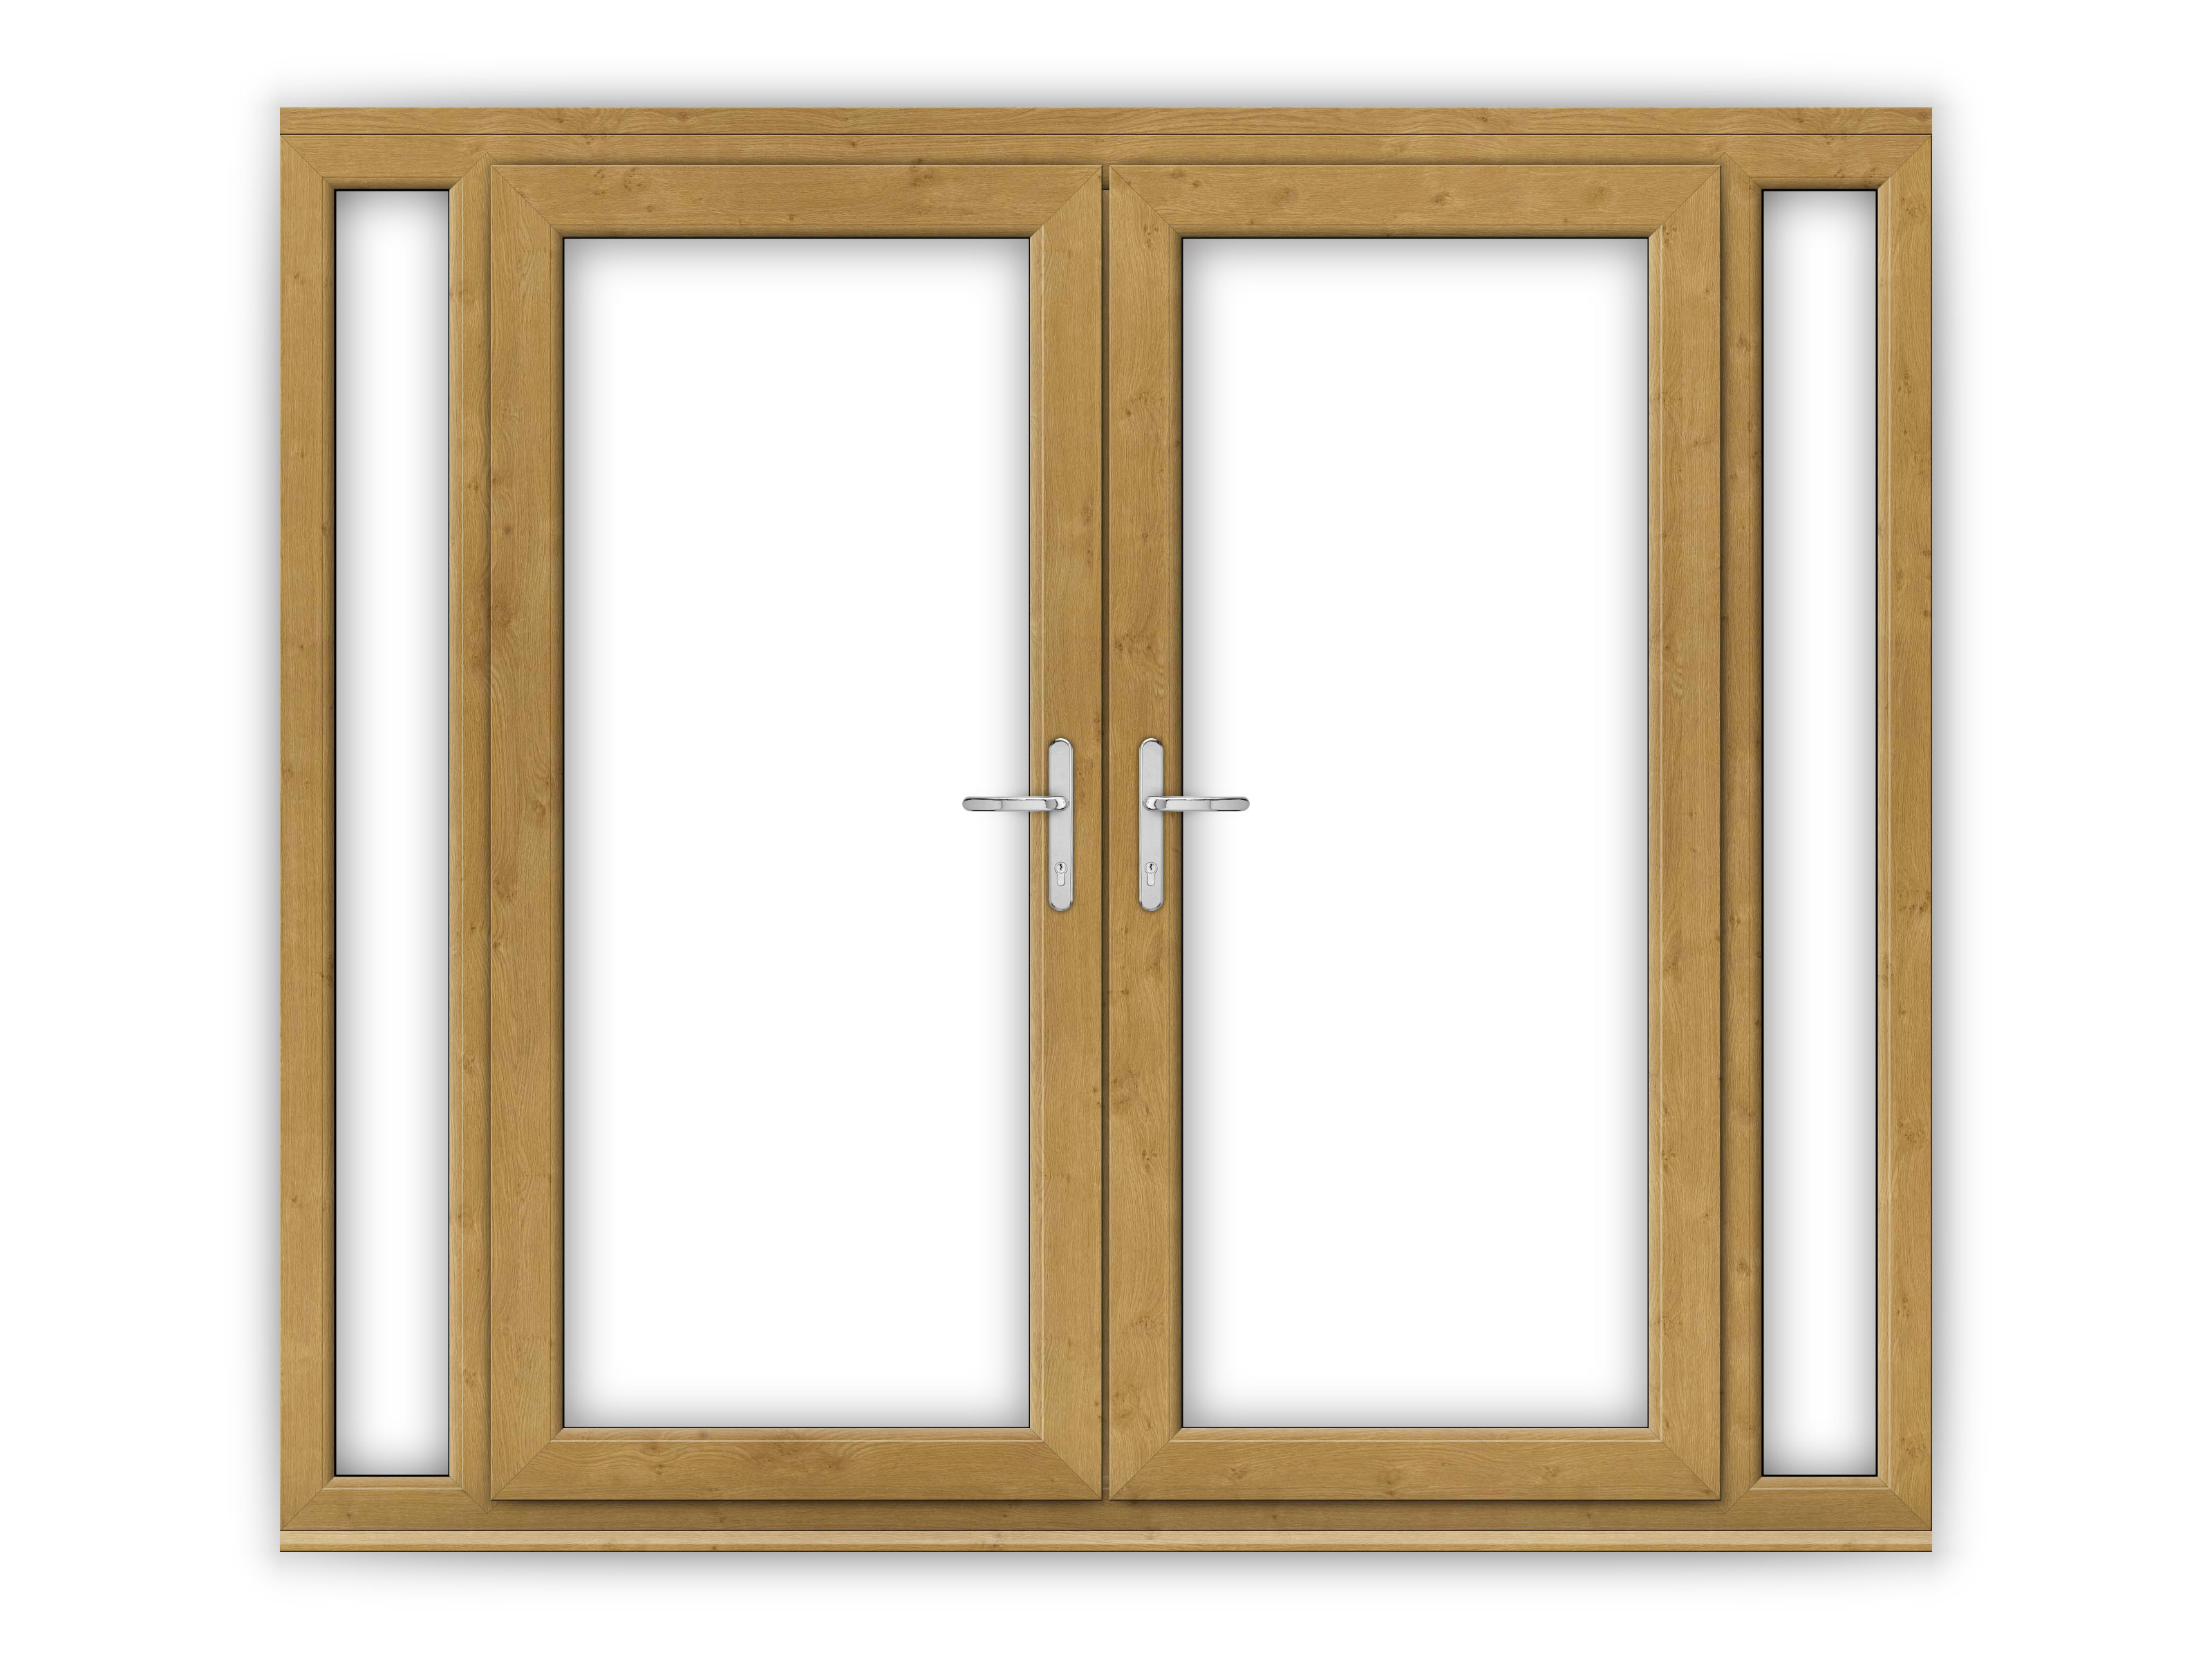 6ft irish oak upvc french doors with narrow side panels for 6 ft french patio doors